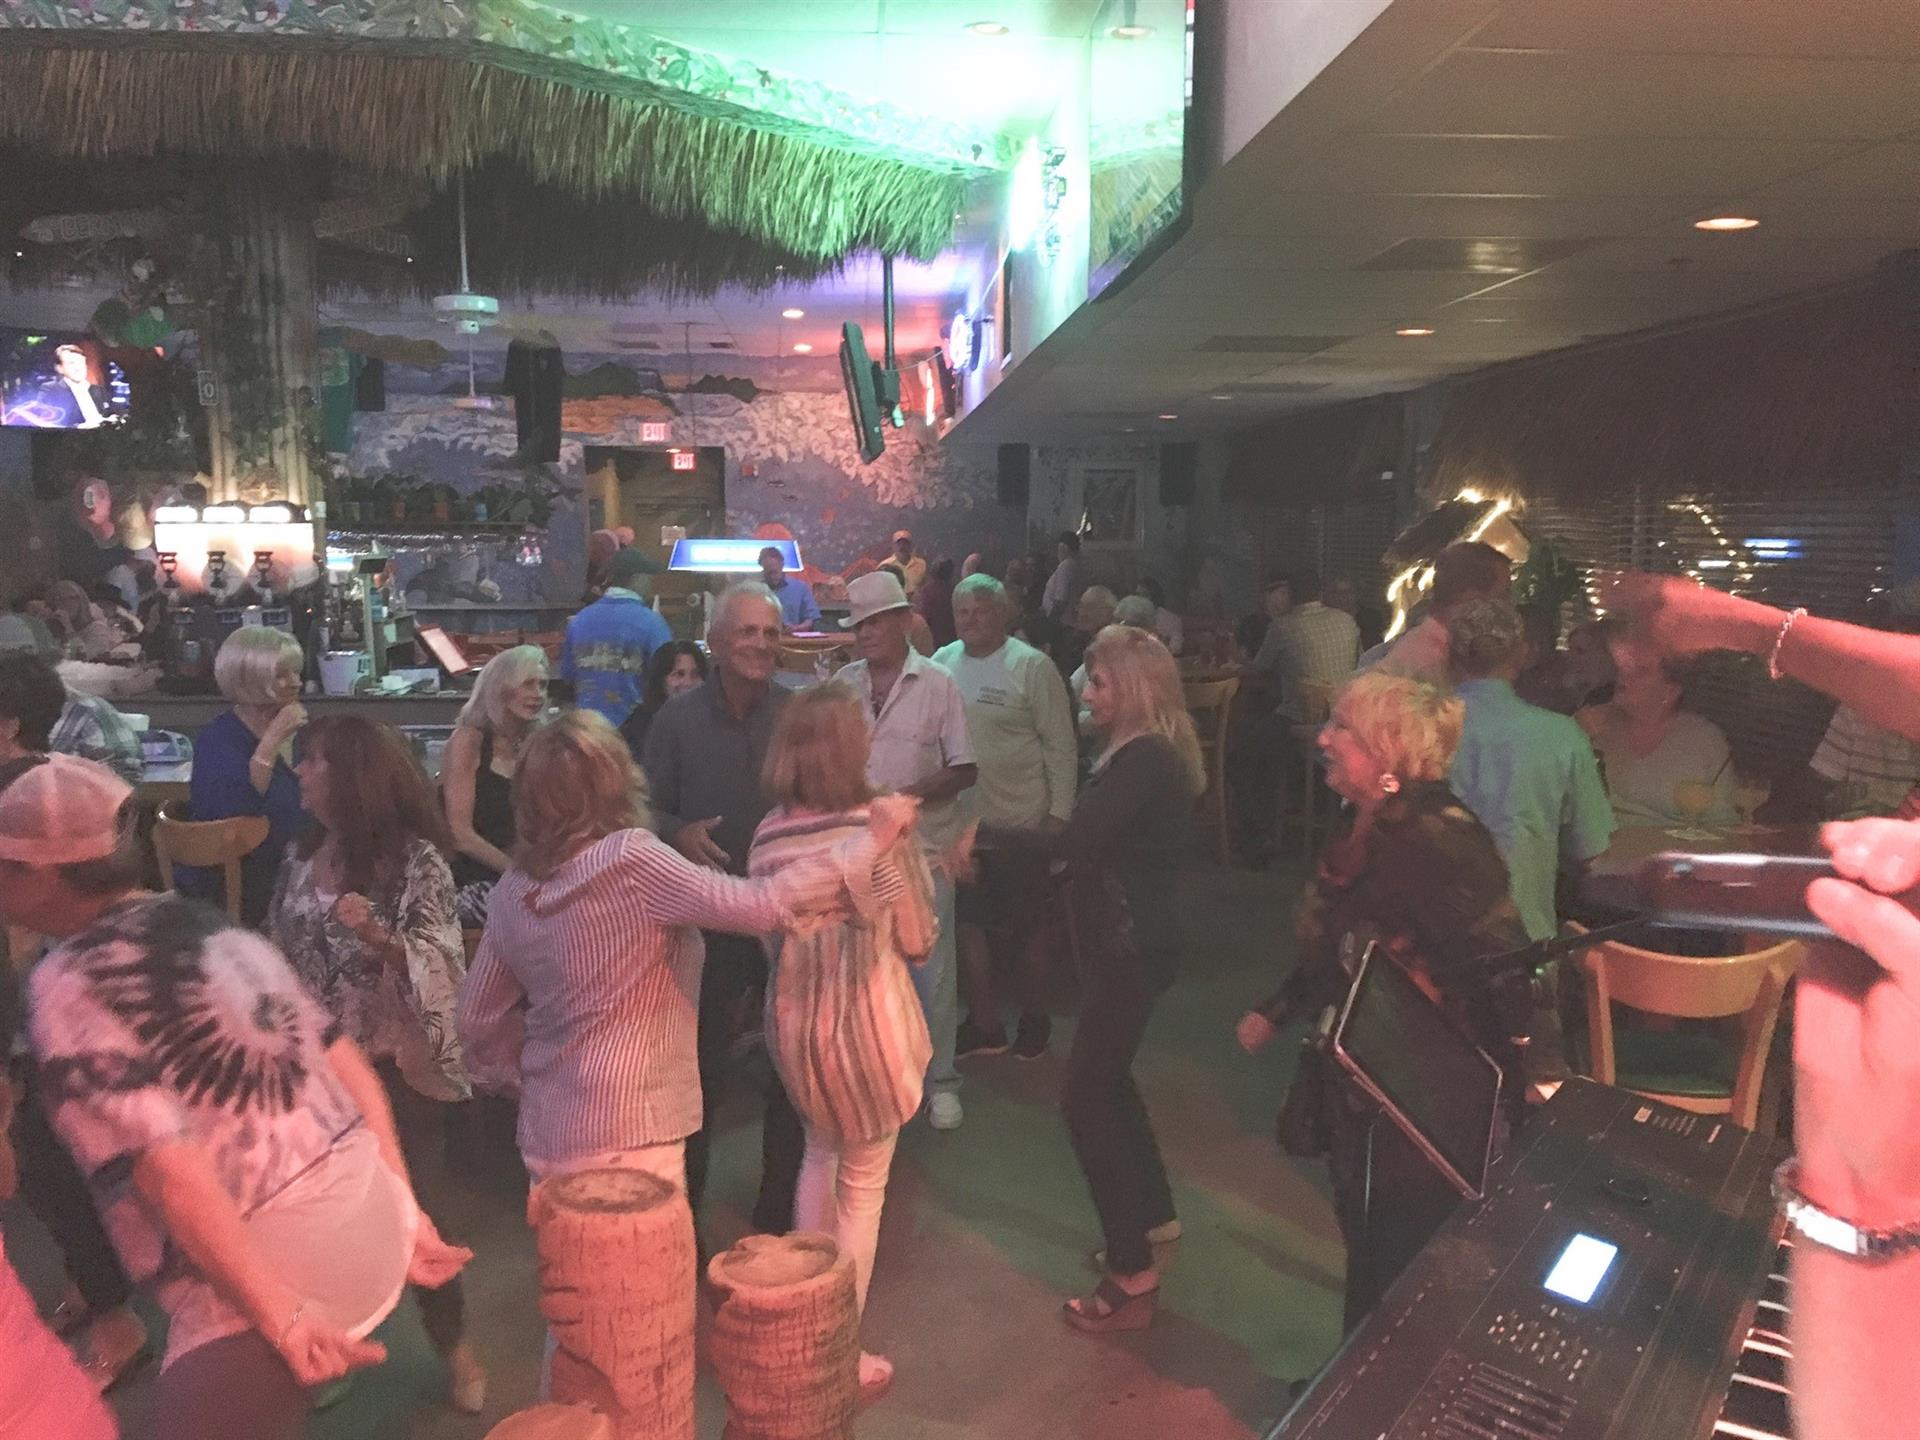 A view of the dance floor full of people dancing and smiling. Bar area in the background